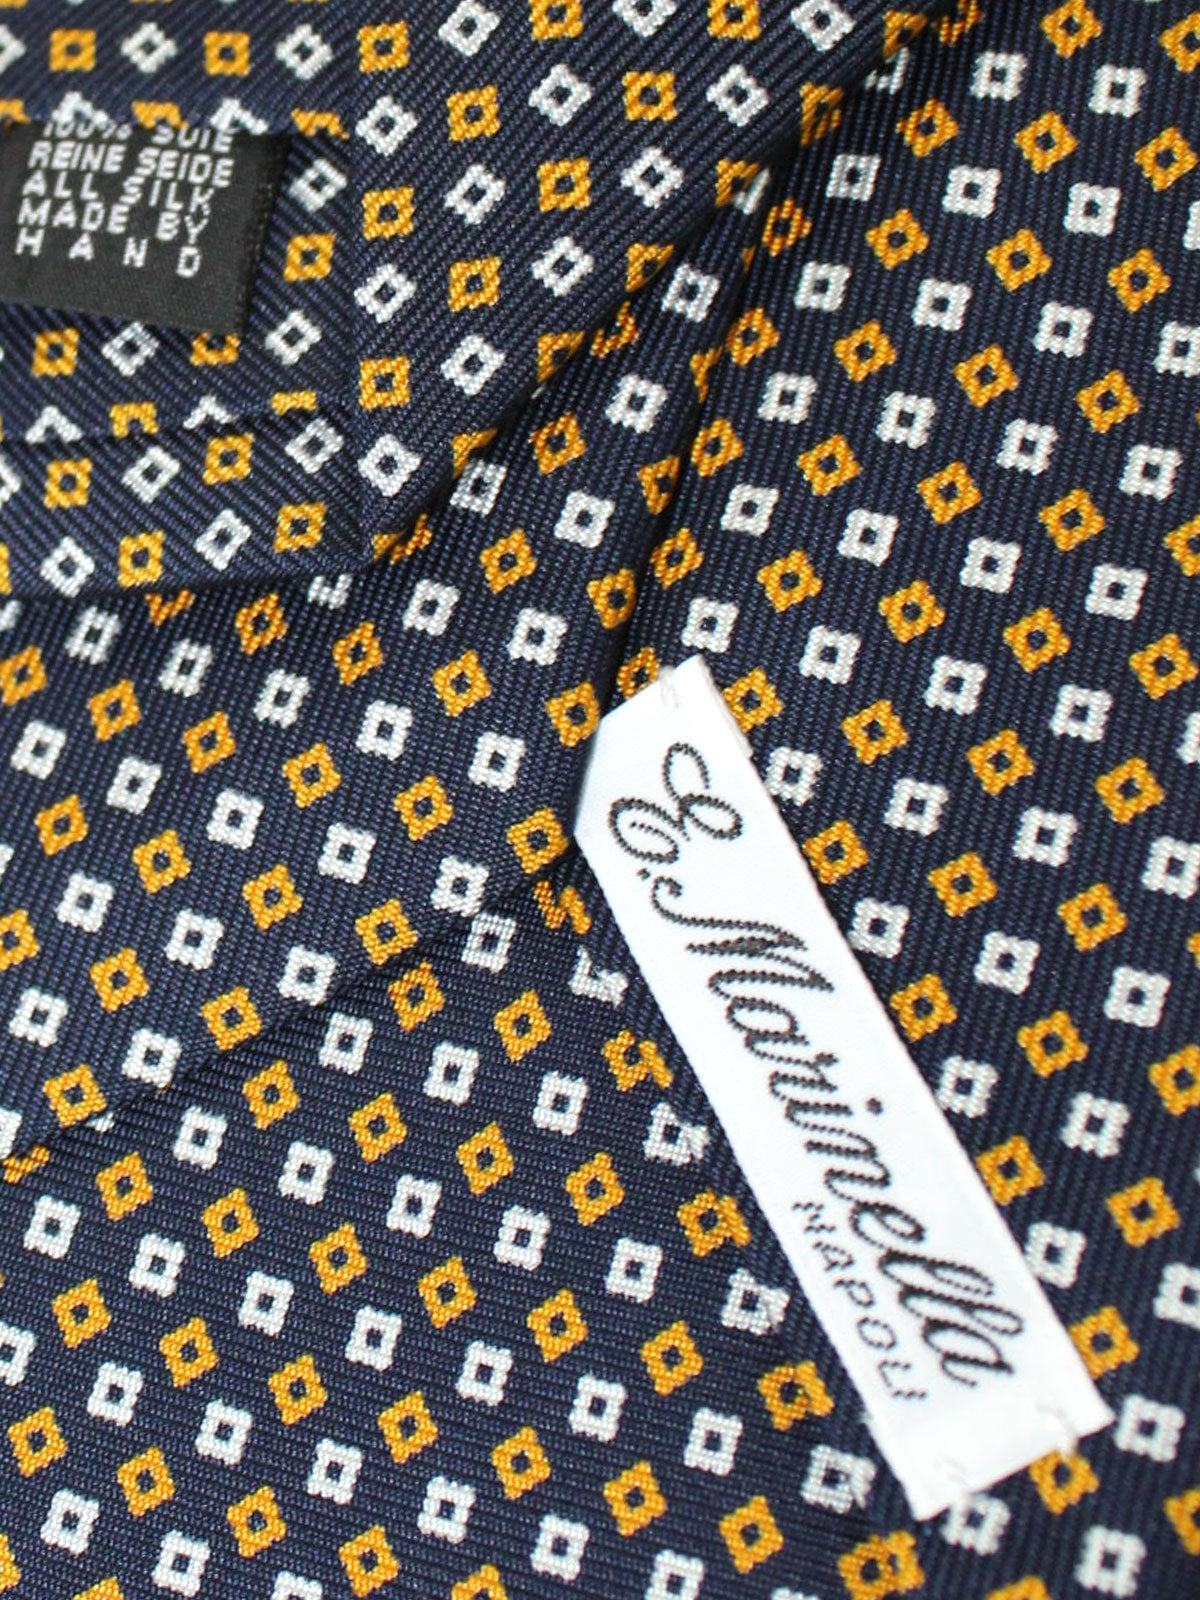 E. Marinella Tie Dark Blue Orange White Geometric - Wide Necktie